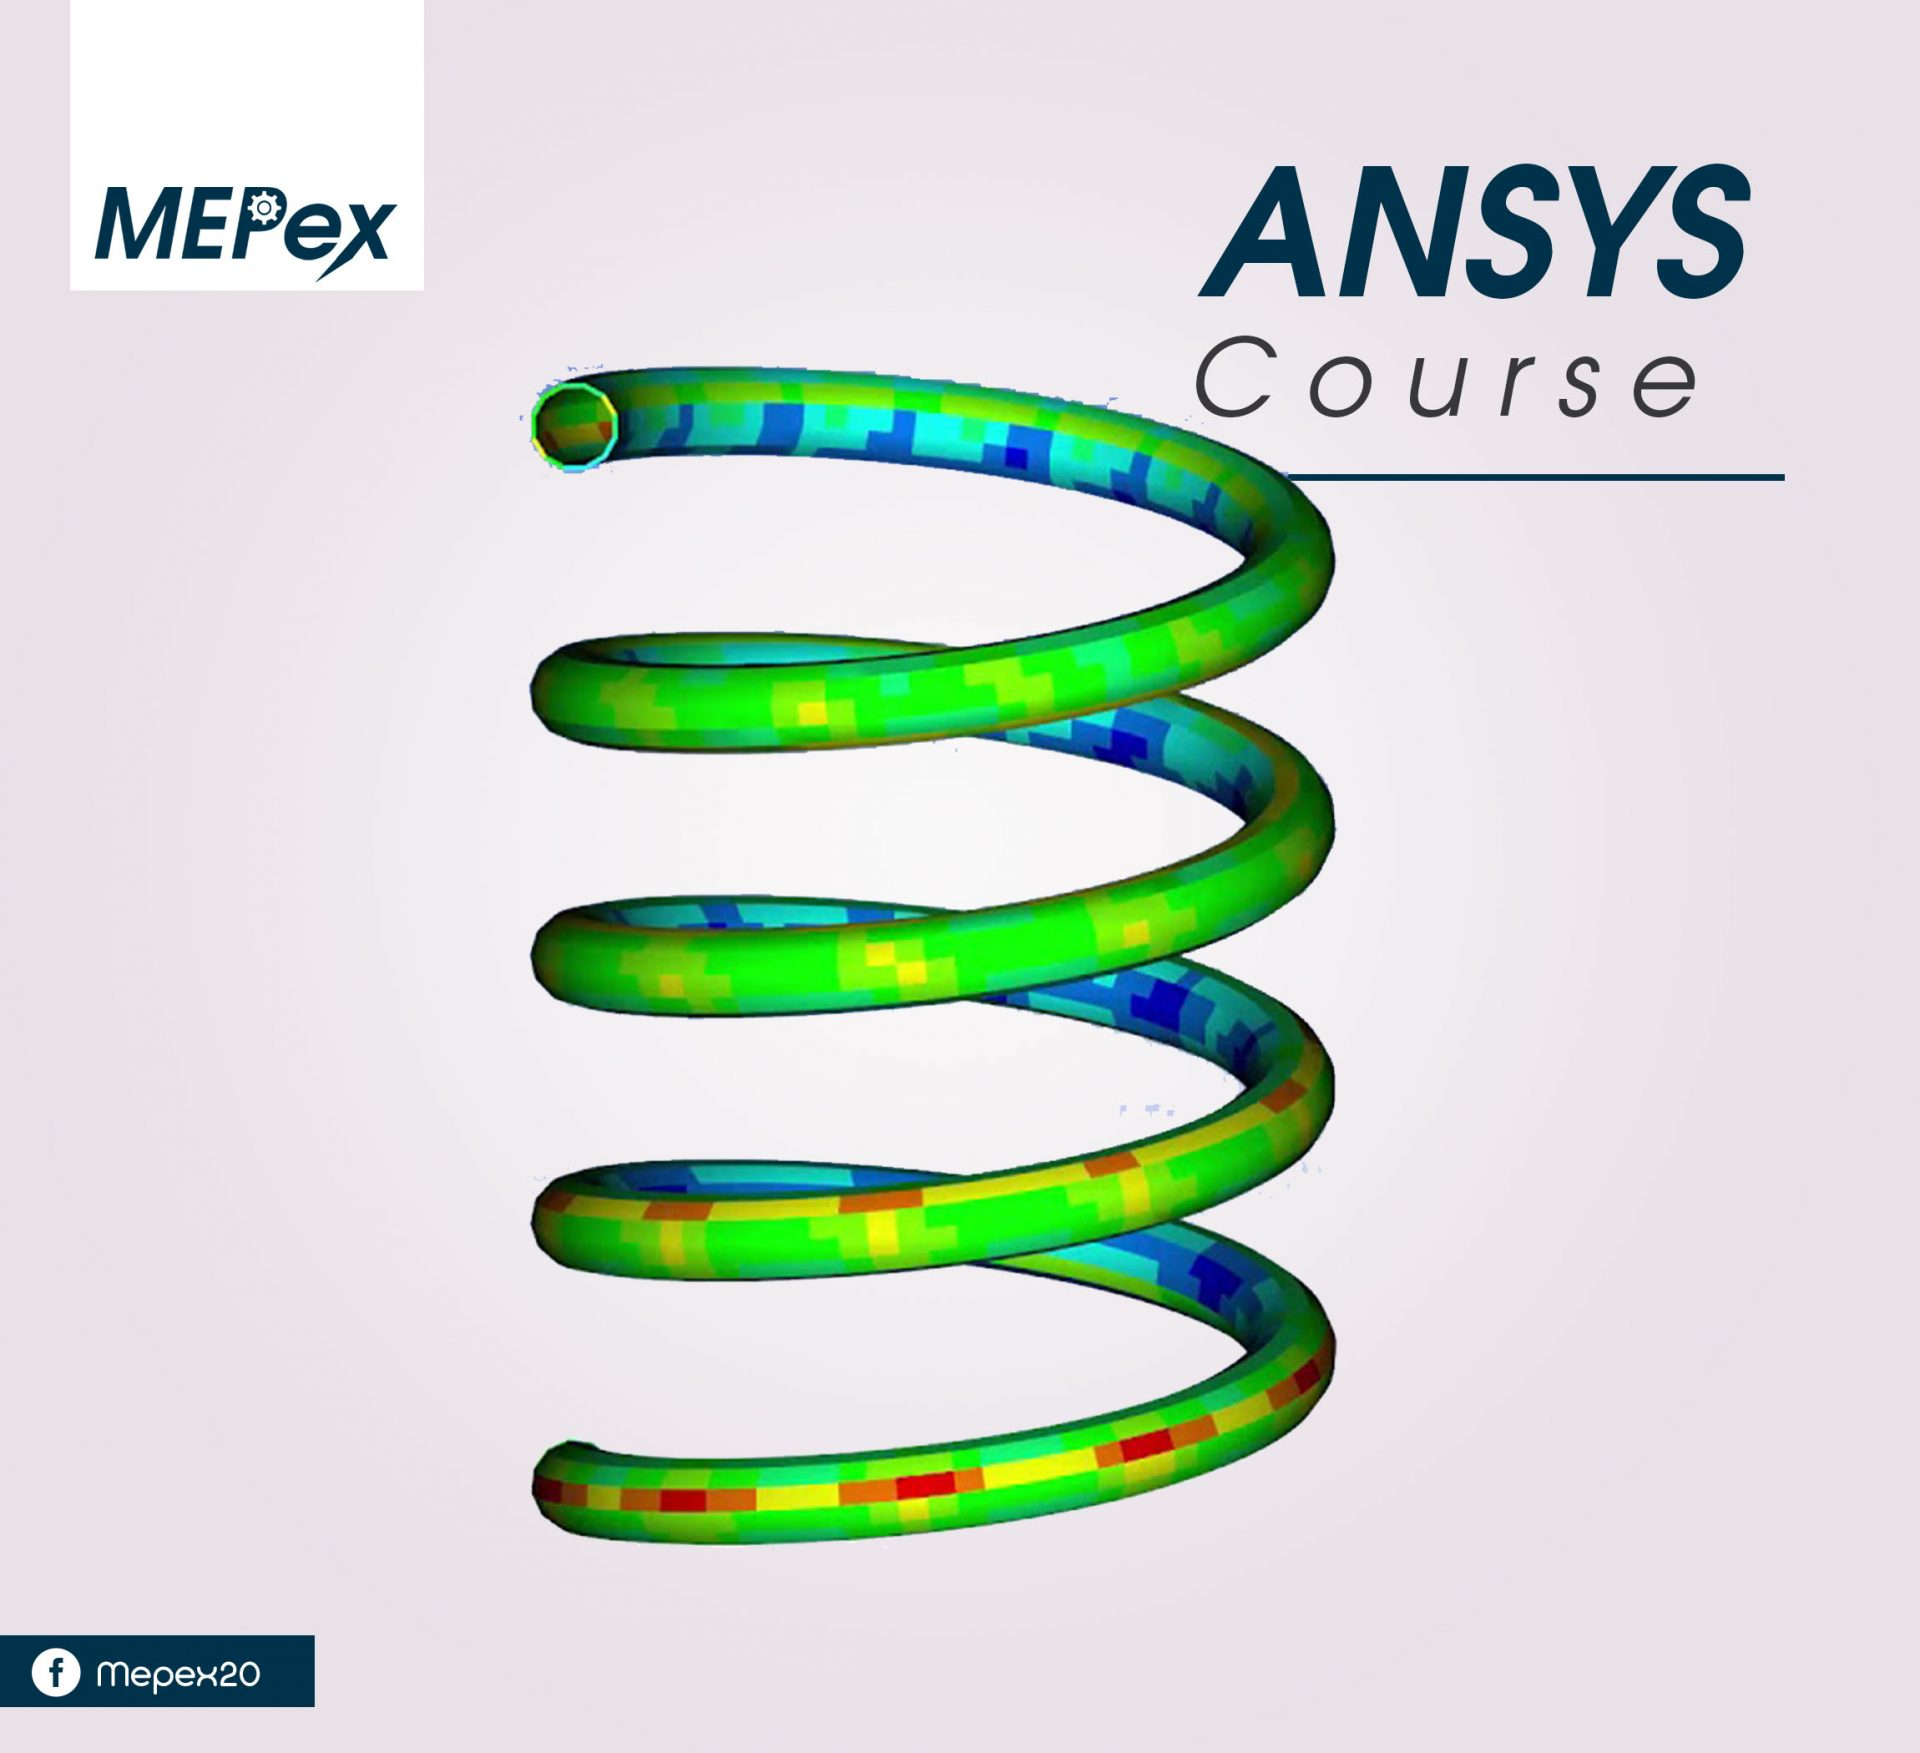 ANSYS Course